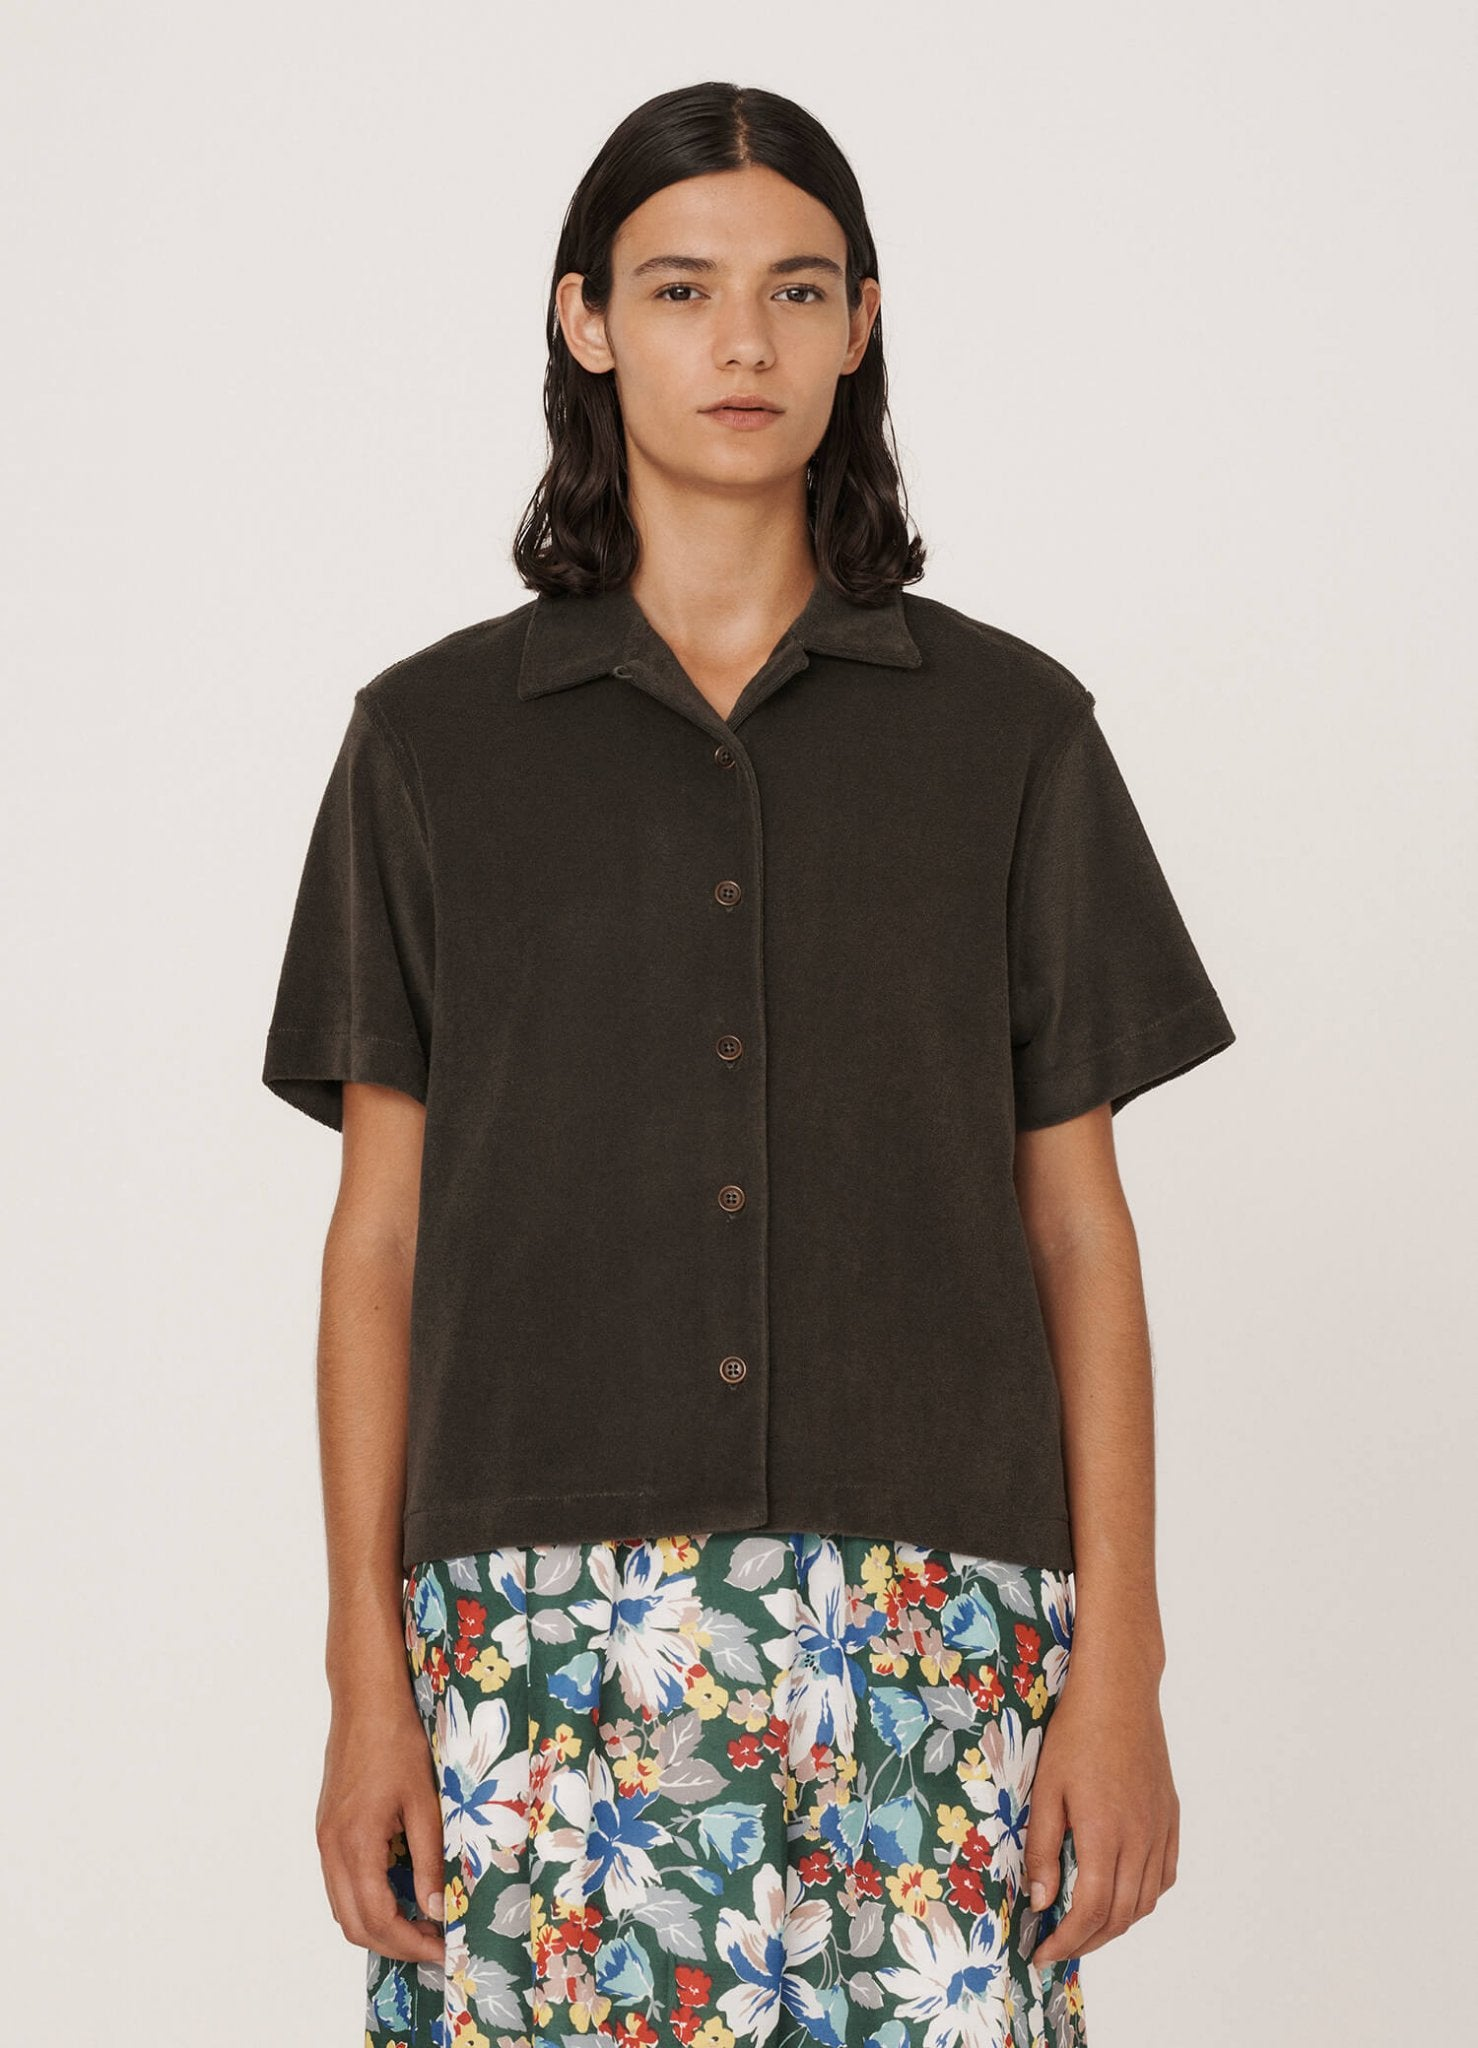 Vegas Shirt in Olive Terry Towelling